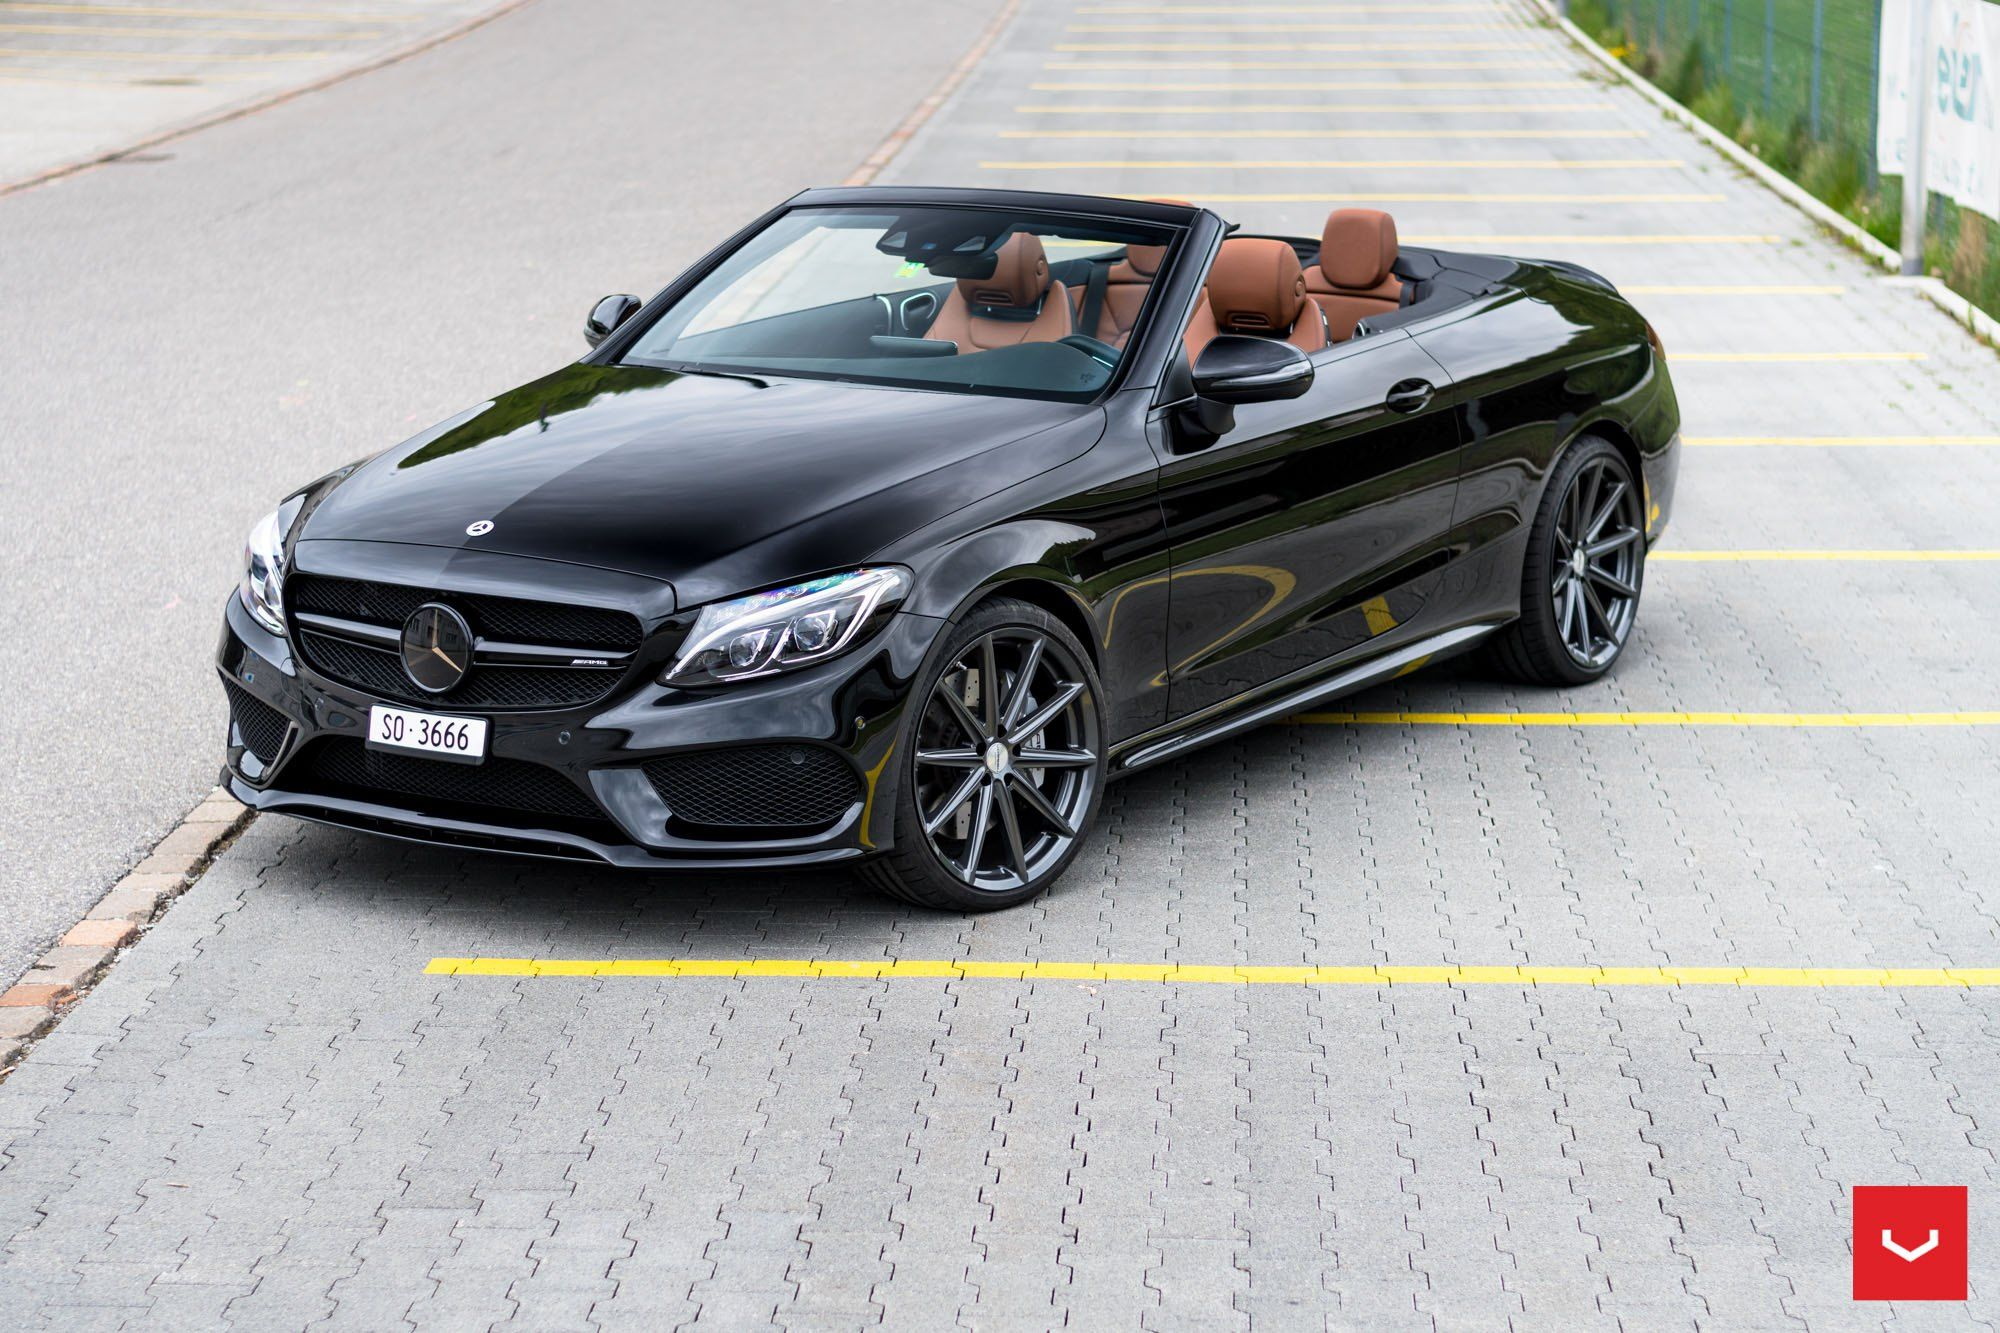 Mercedes Aftermarket Parts >> Stylish Aftermarket Parts On Stunning Convertible Mercedes C